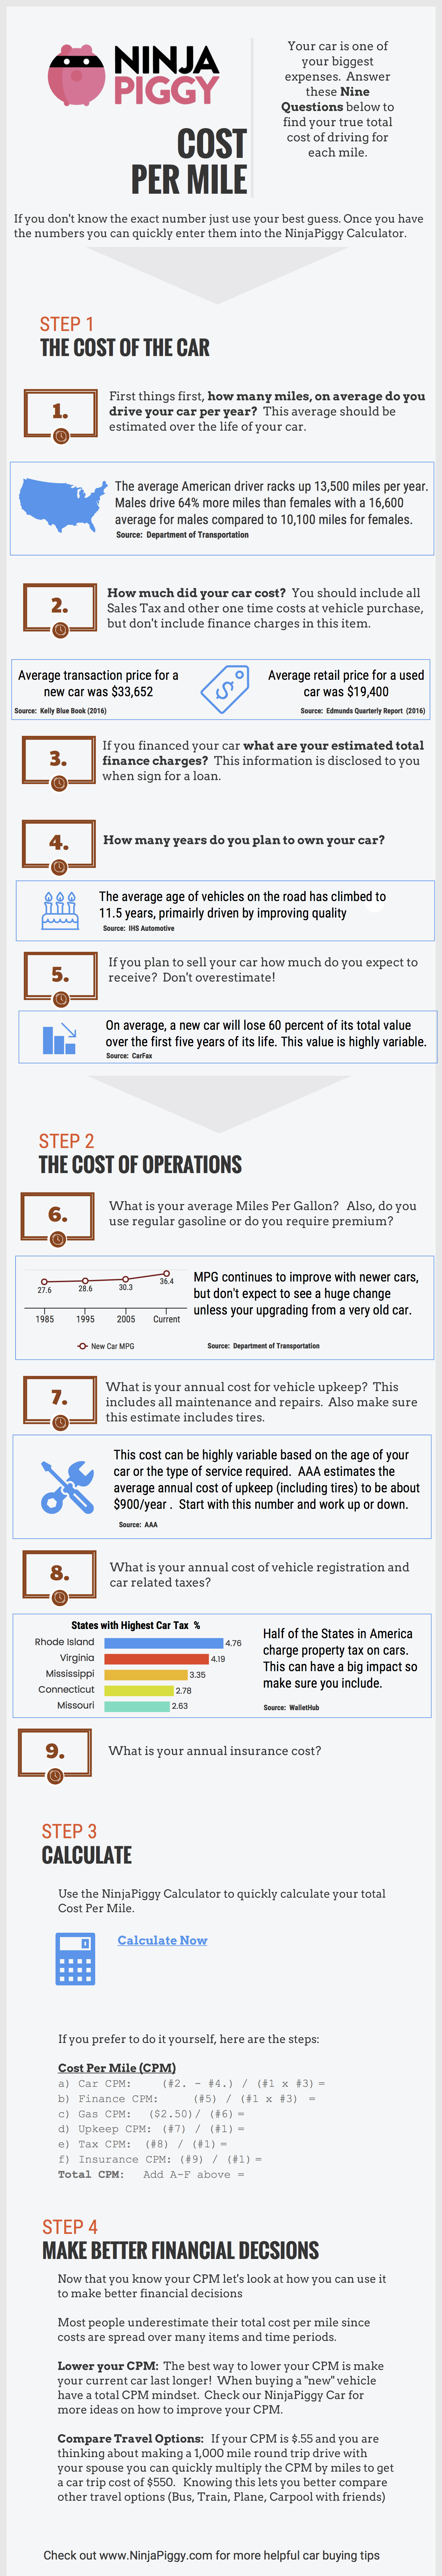 Cost Per Mile Infographic